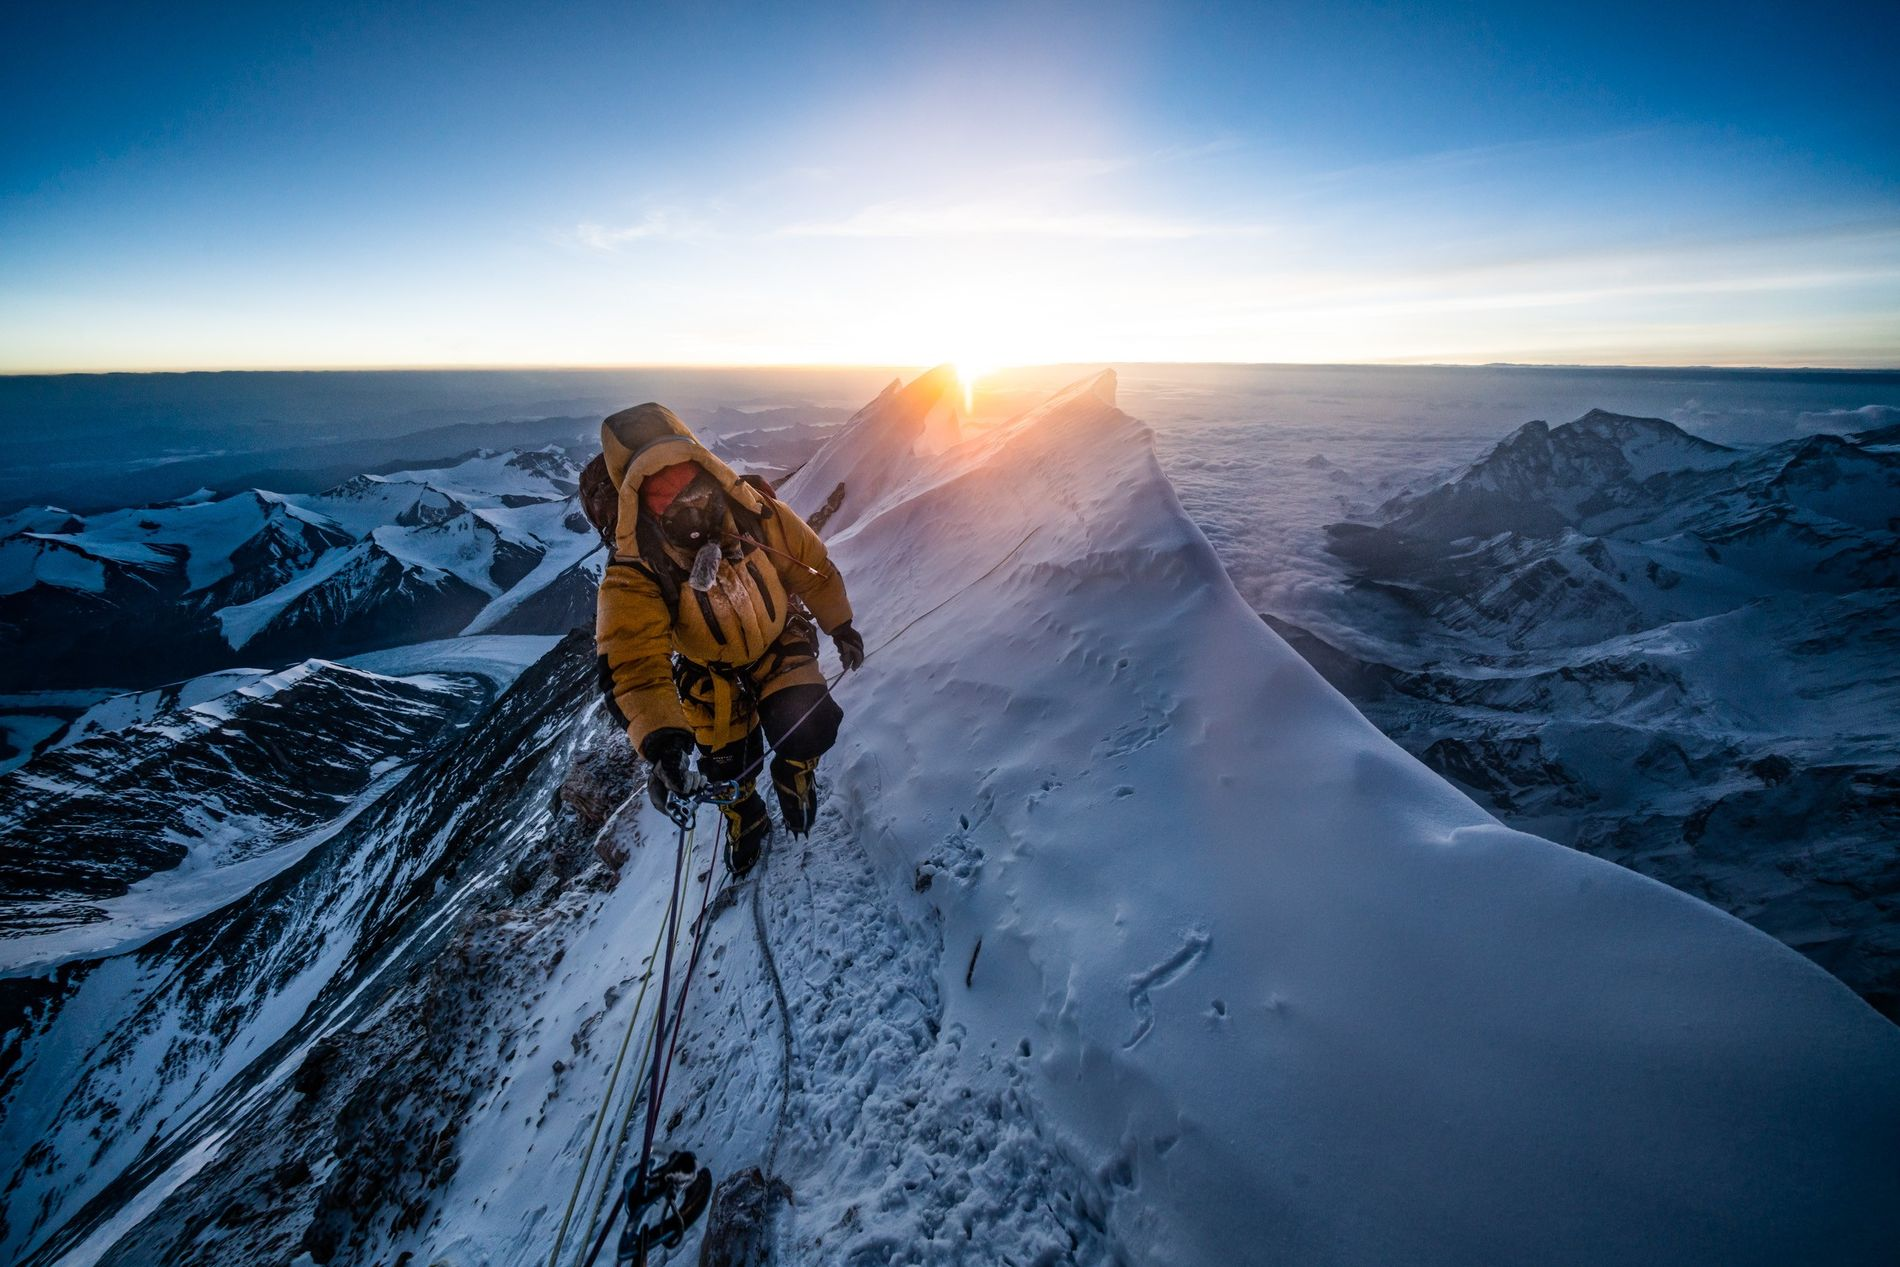 China and Nepal have cancelled the upcoming climbing season for both sides of Mount Everest. It ...